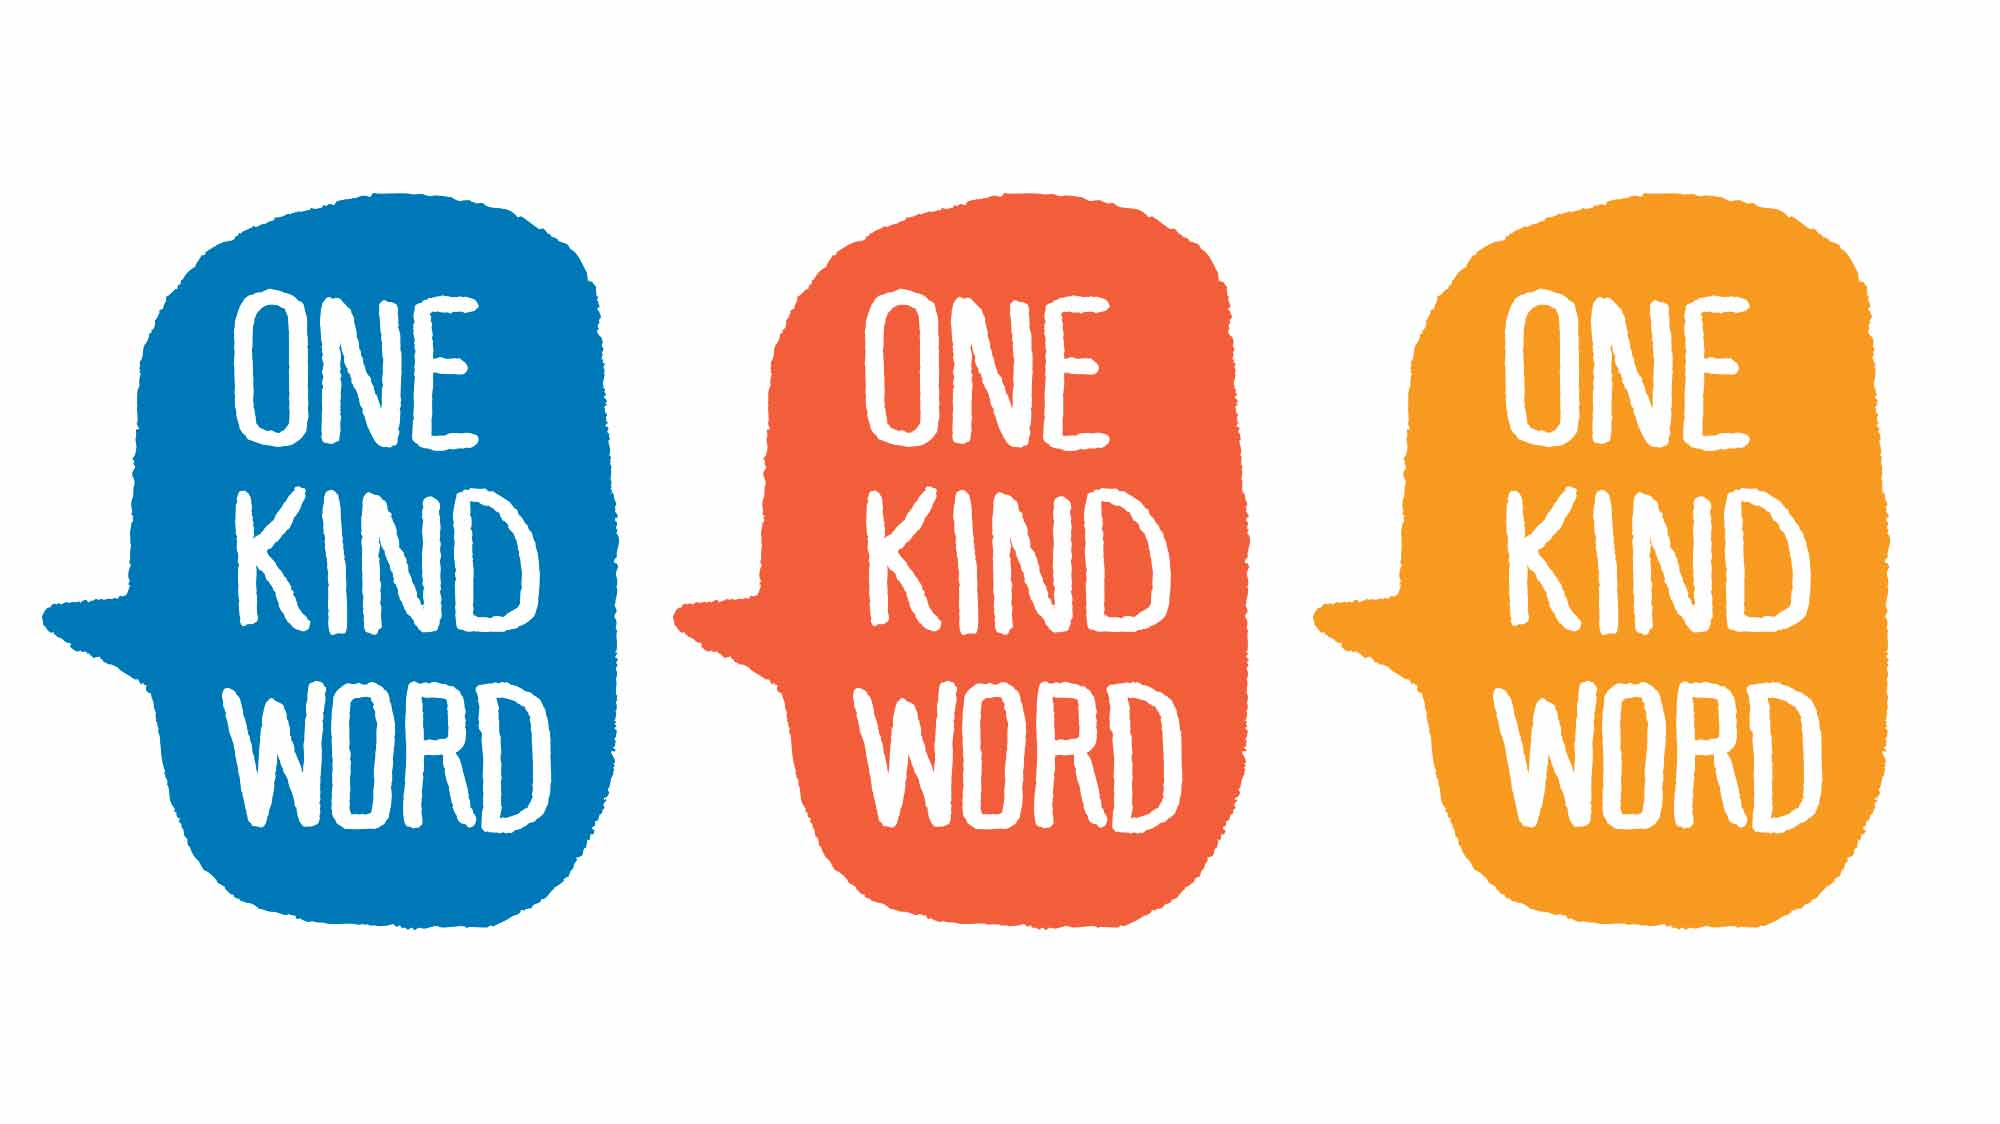 One Kind Word logo in 3 colors: Blue, Red-Orange, and Yellow